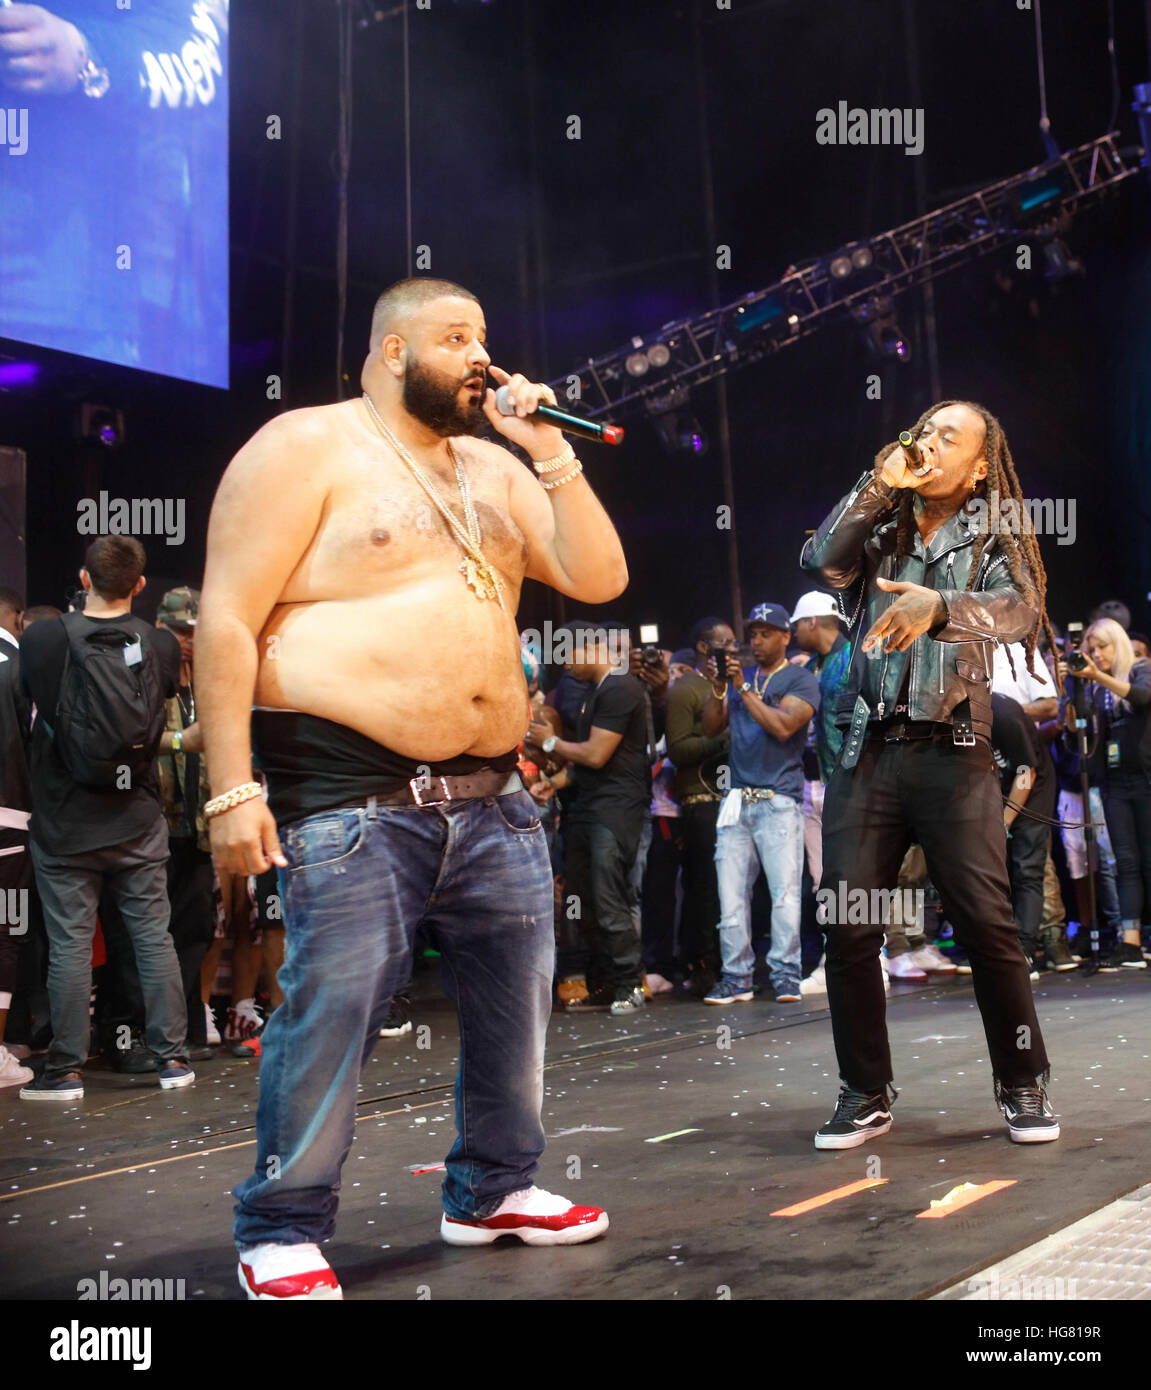 DJ Khaled and Ty Dolla Sign perform at Hot 97 Summer Jam 2016 at Metlife Stadium in East Rutherford, New Jersey. - Stock Image